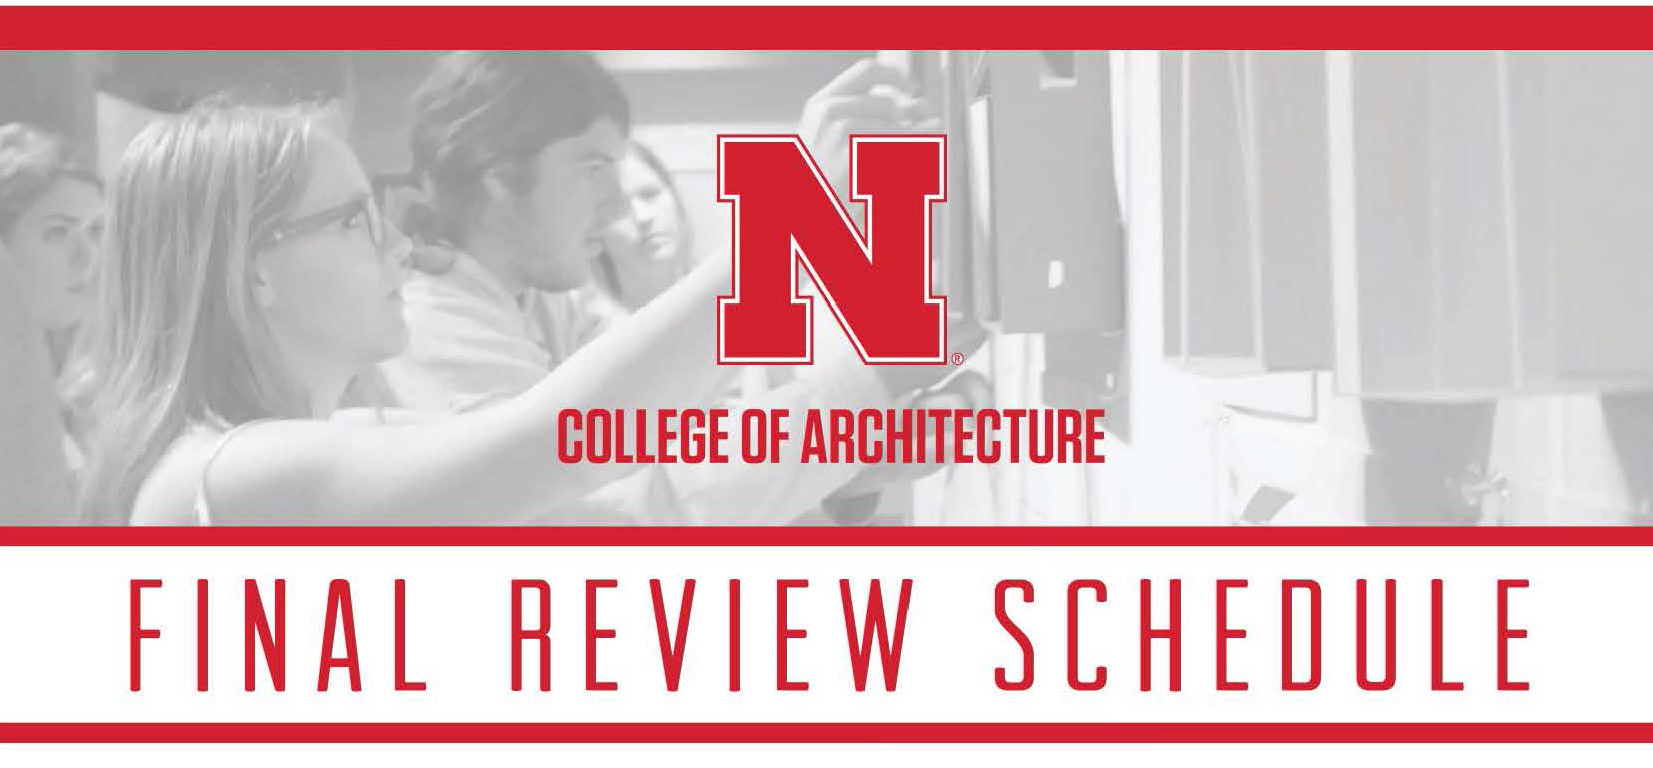 Final Review Poster